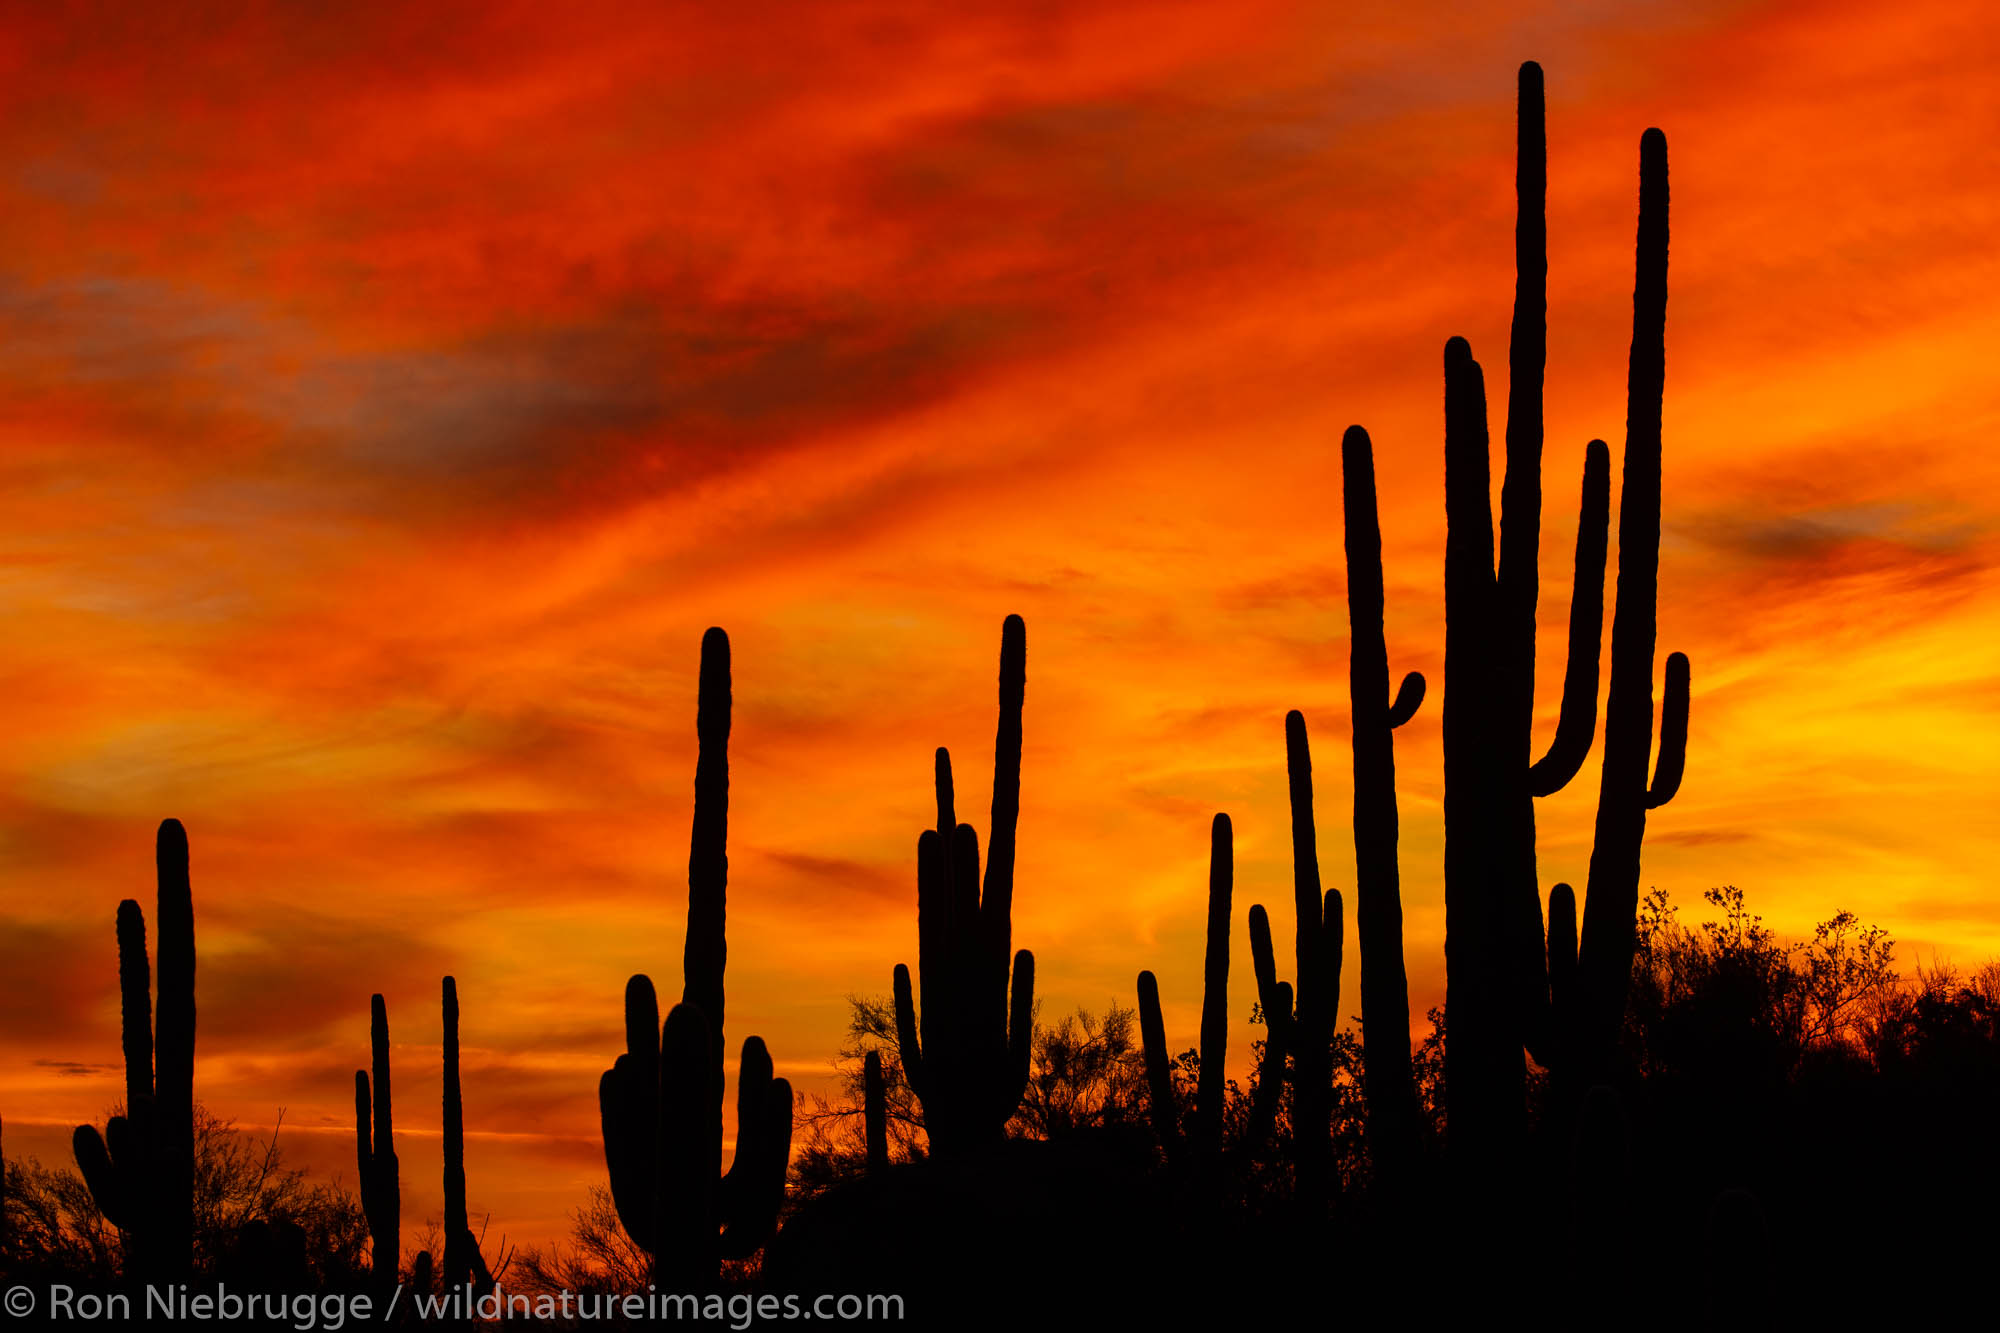 Saguaro cactus at sunset, Marana, near Tucson, Arizona.